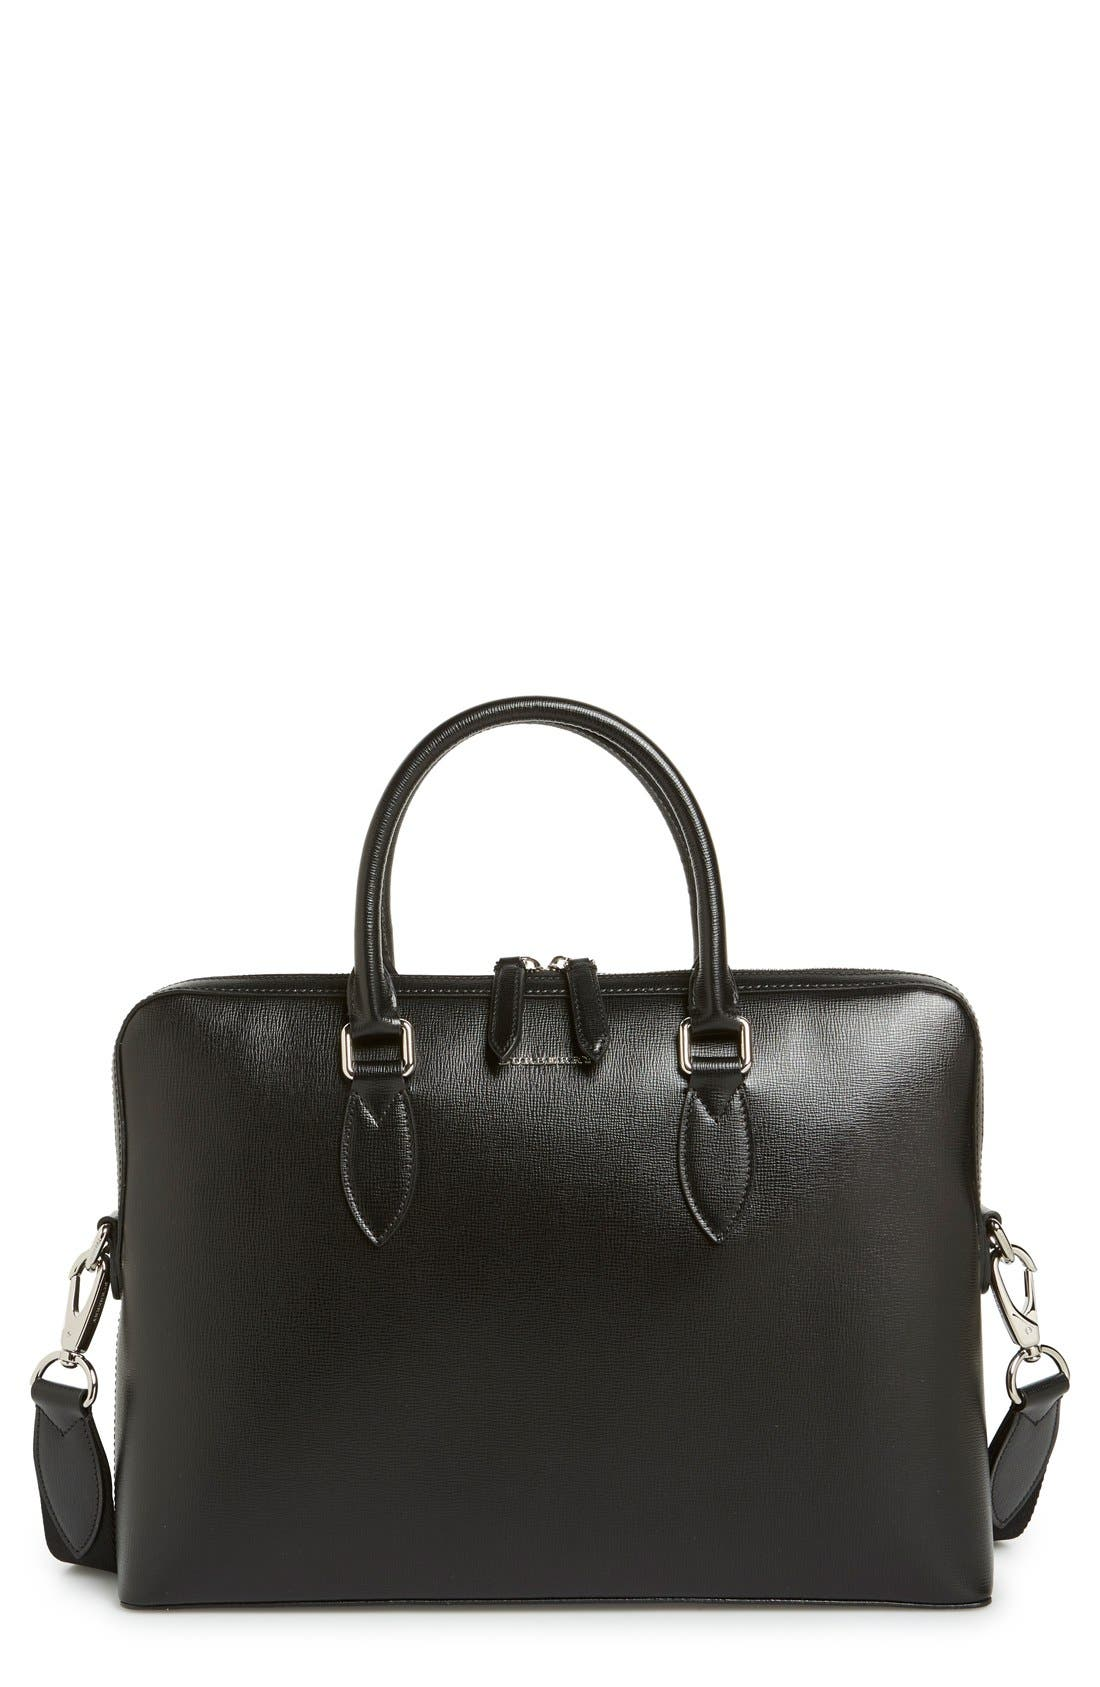 BURBERRY 'New London' Calfskin Leather Briefcase